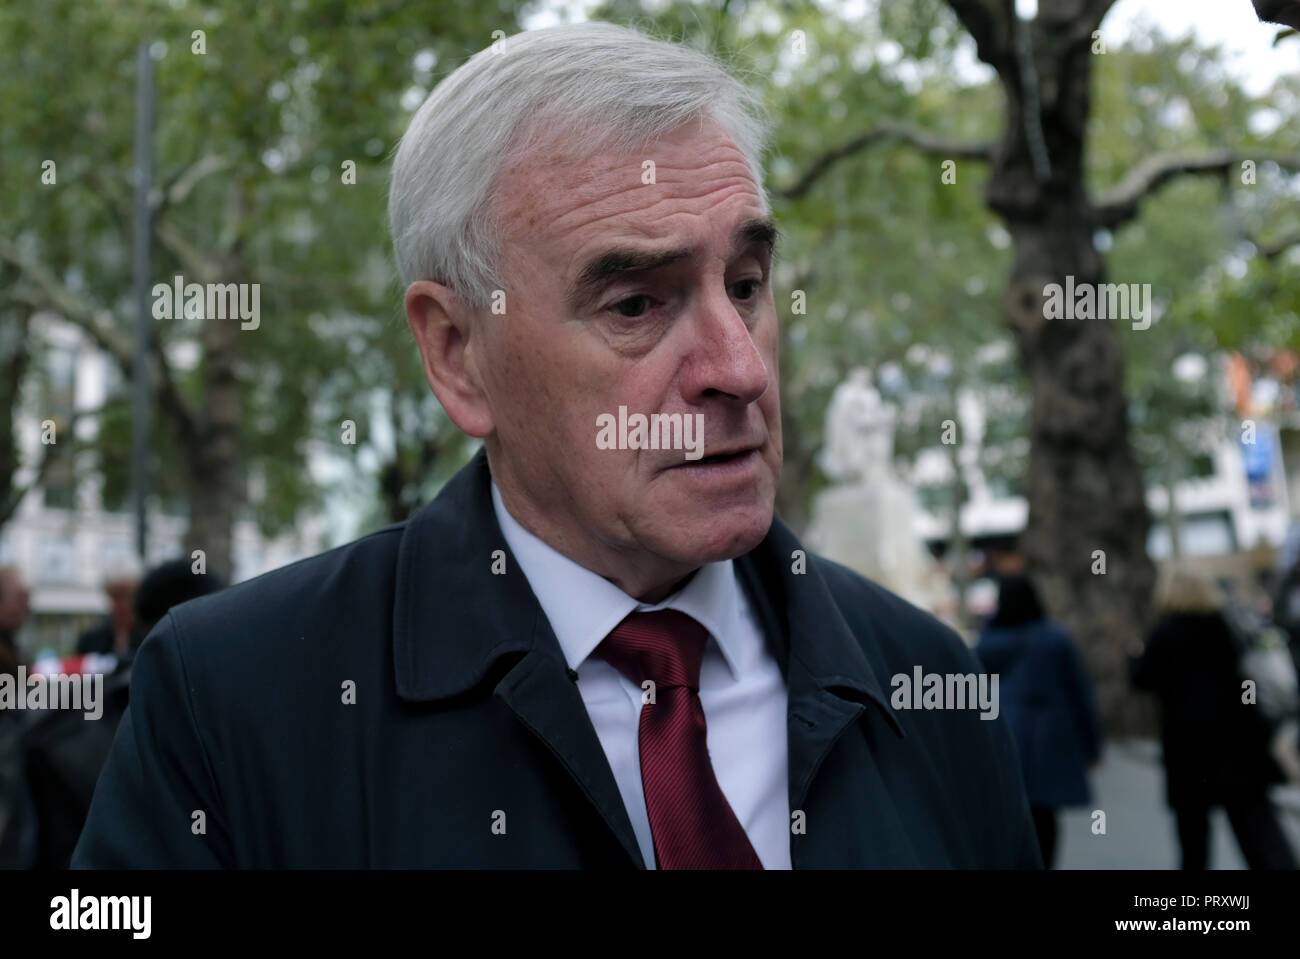 John McDonnell, Labor Member of Parliament seen during the demonstration. Wetherspoons, TGI Fridays, and McDonald's workers rally together in London to demand better working conditions and a fair pay in the hospitality industry. - Stock Image